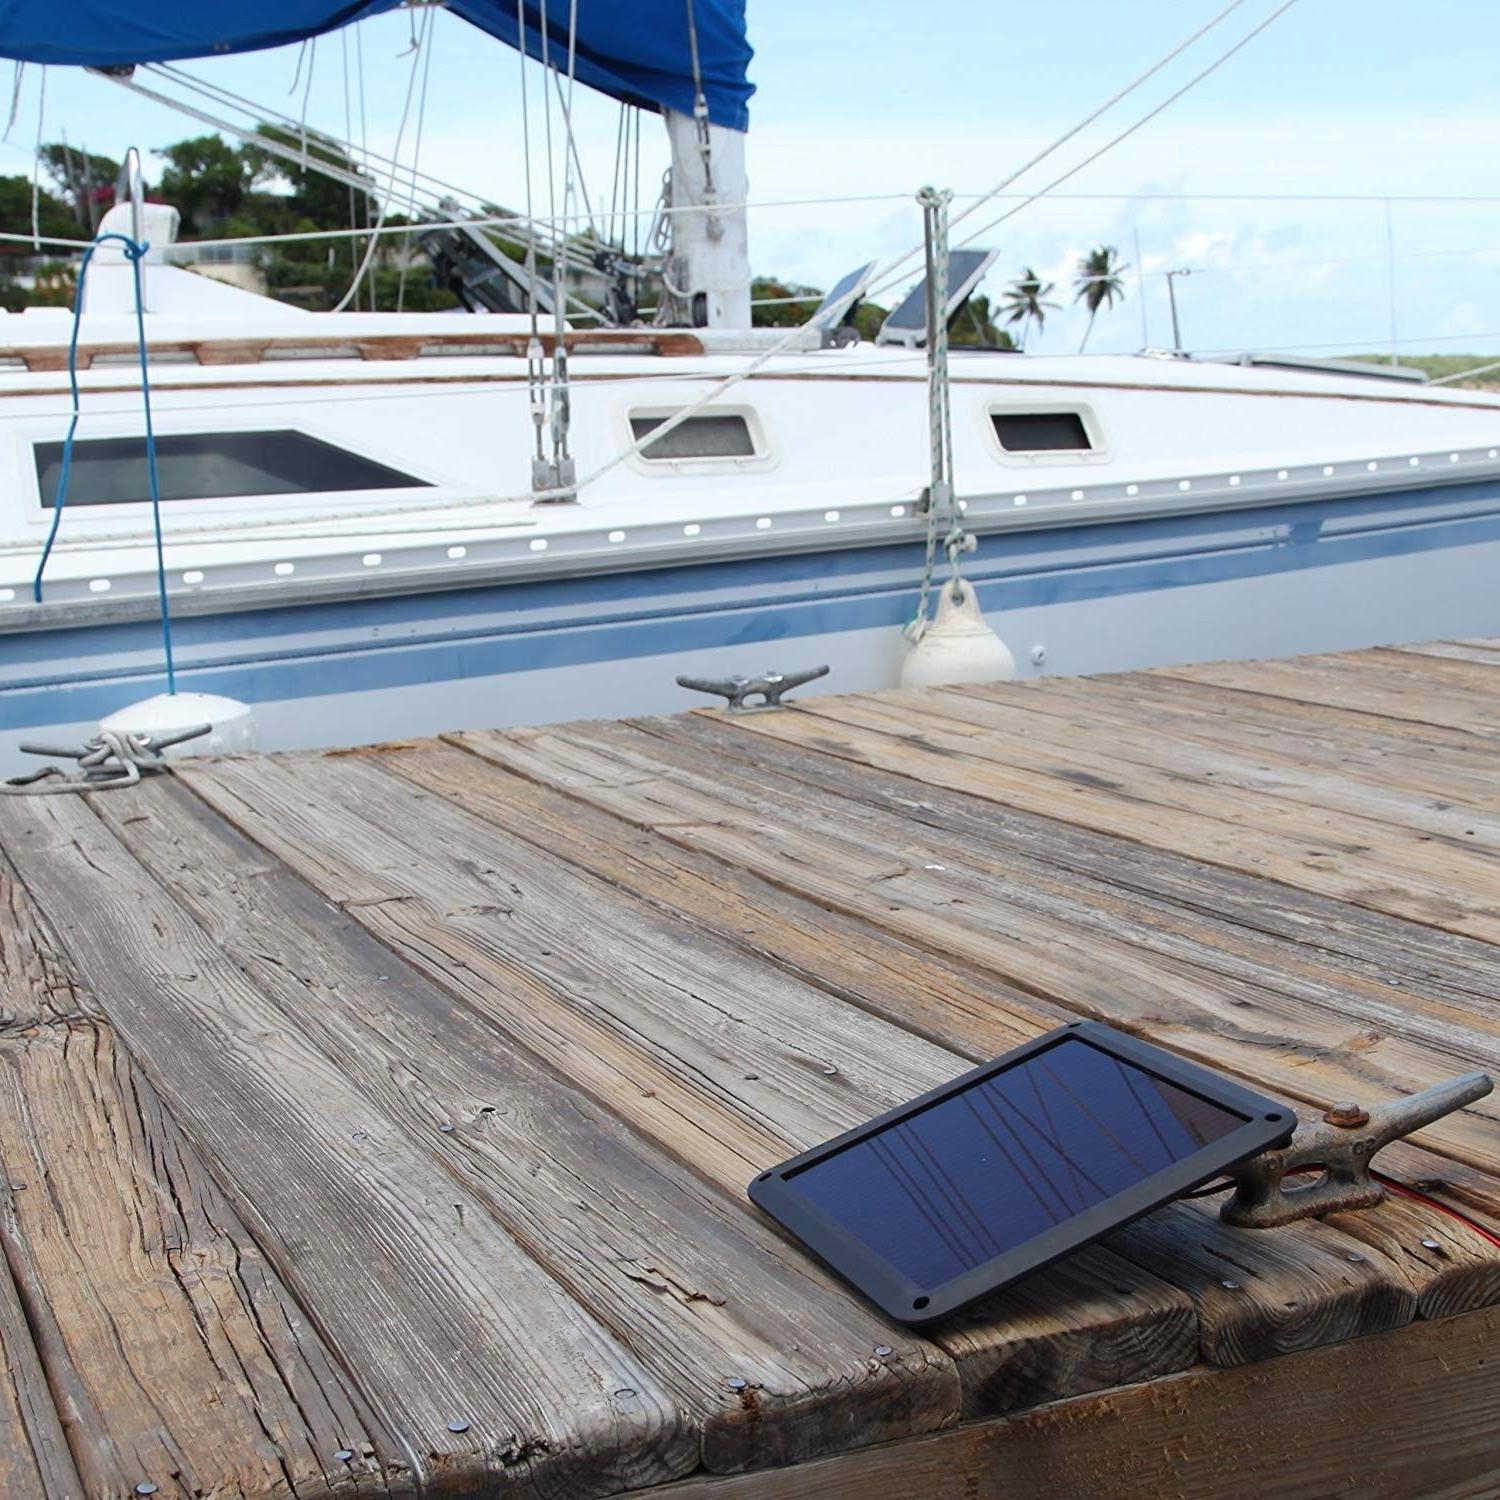 Solar Charger Boat